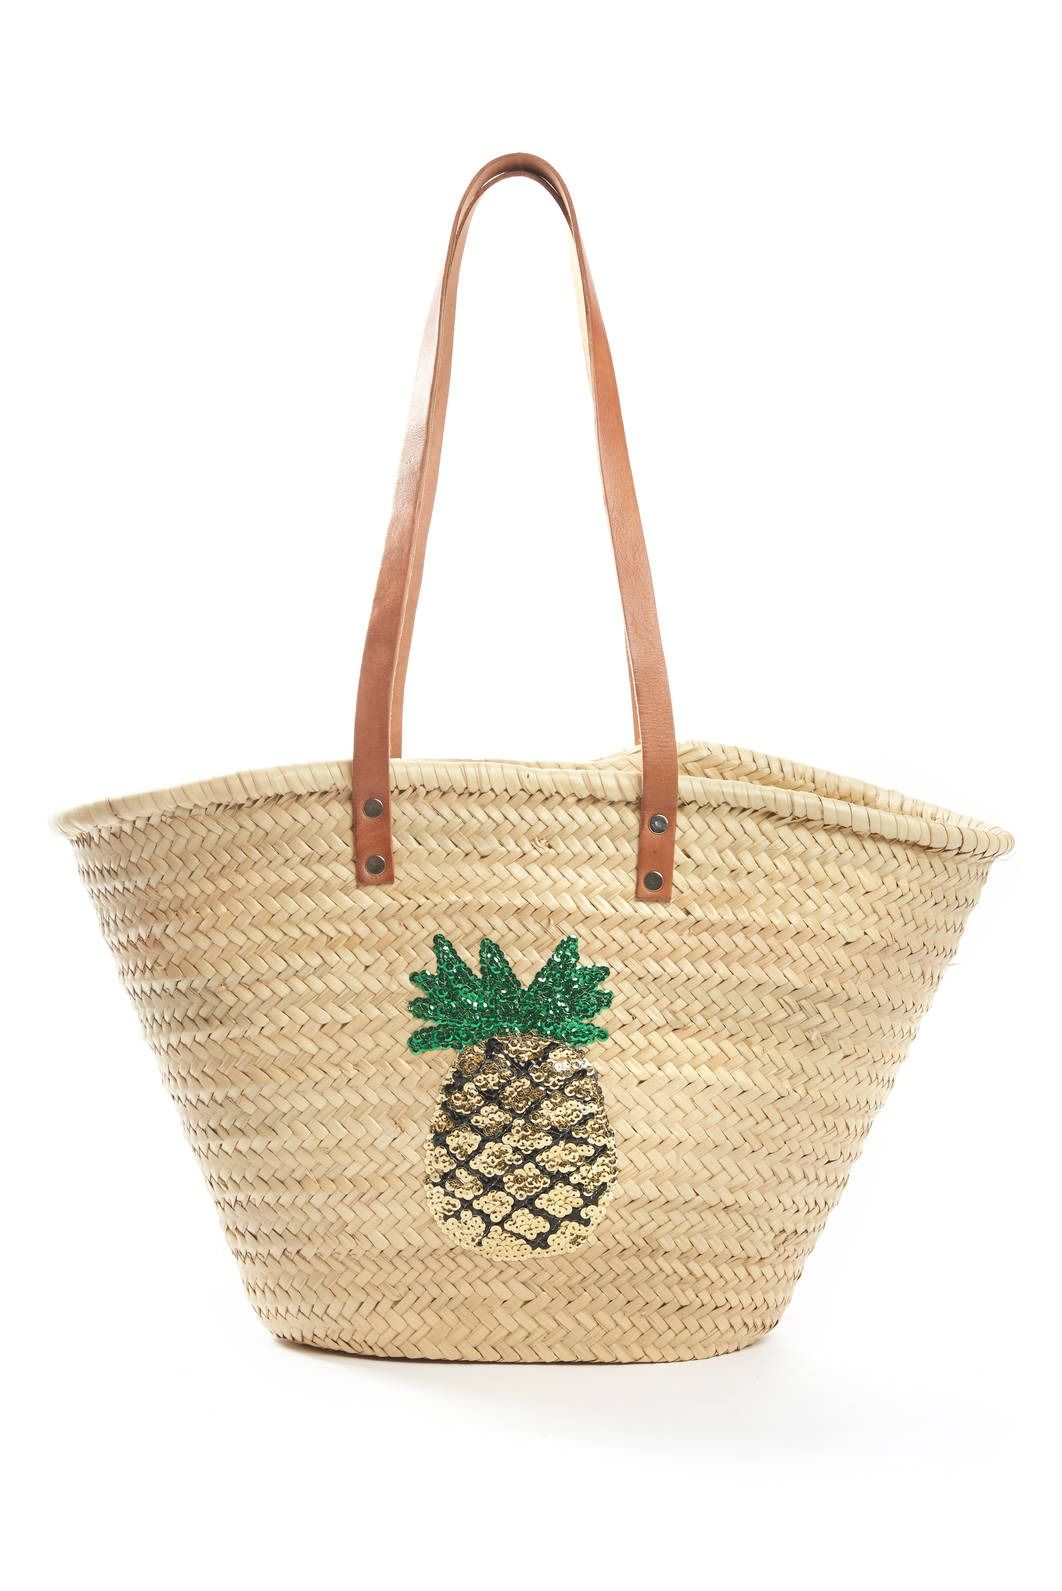 3e4720c2400fa0 St. Honore Pineapple Sequins Straw Bag   South Moon Under   My kind ...